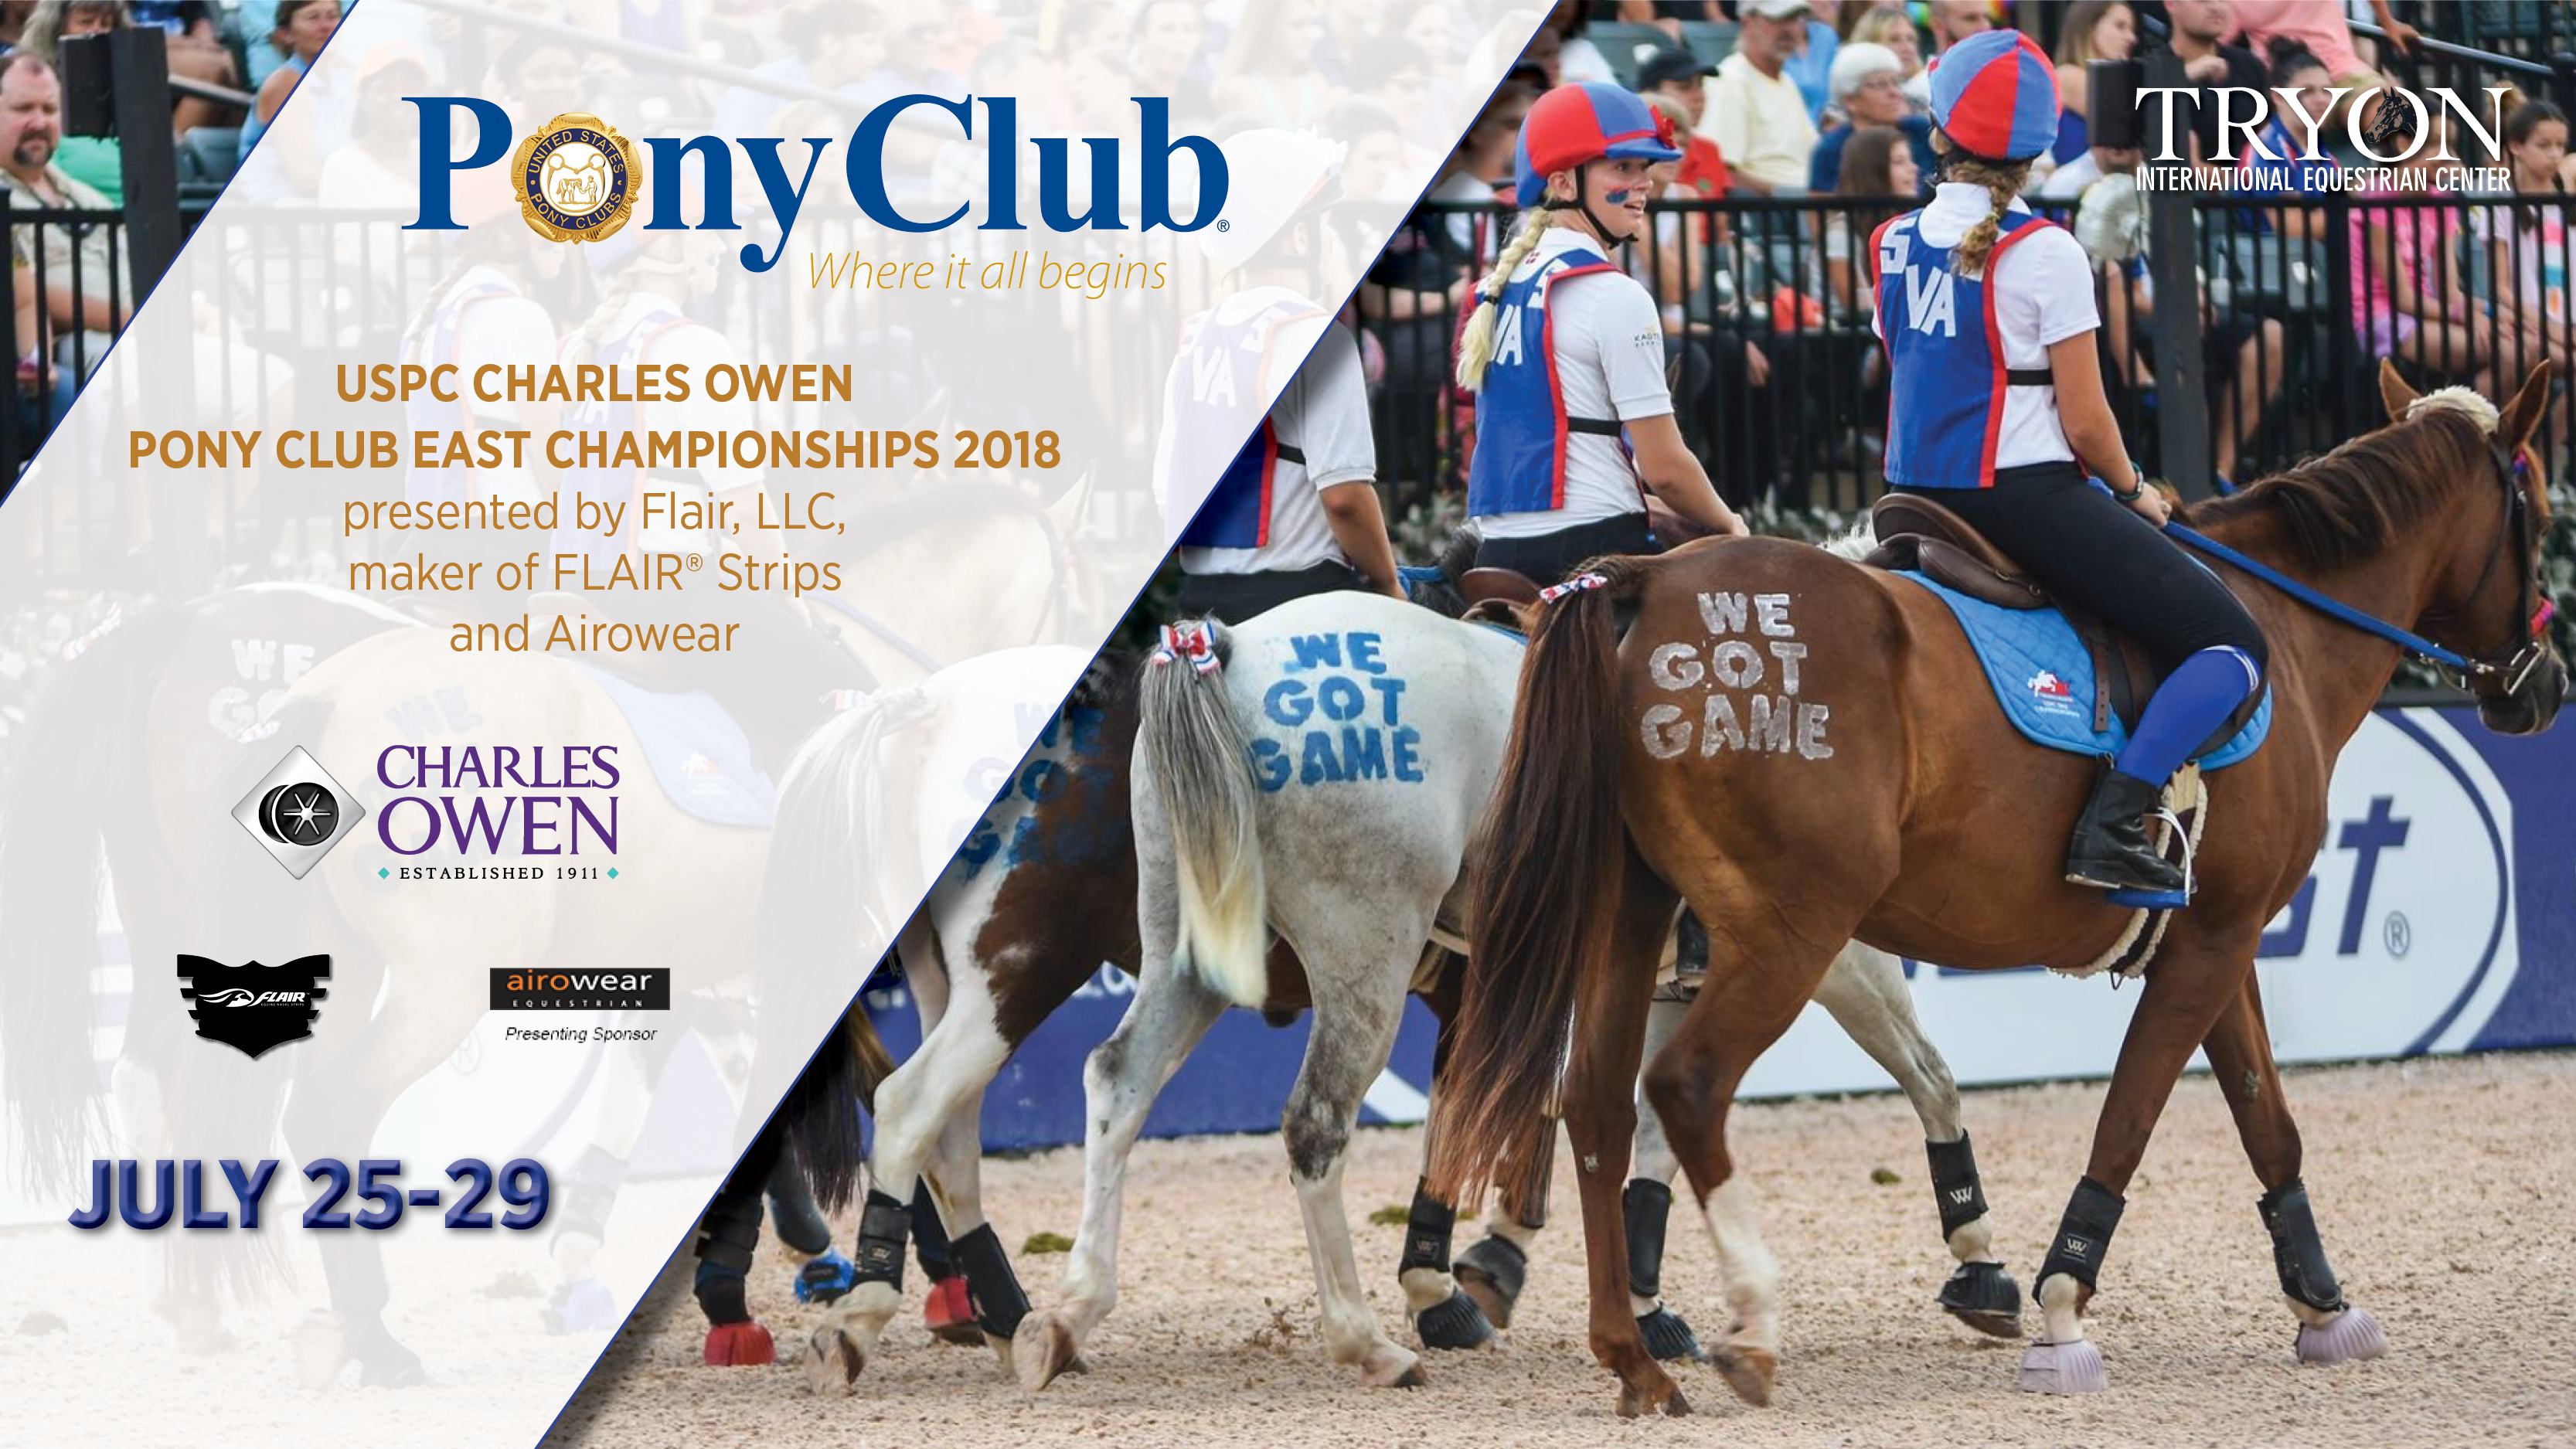 Join us for the USPC Charles Owen Pony Club East Championships 2018!